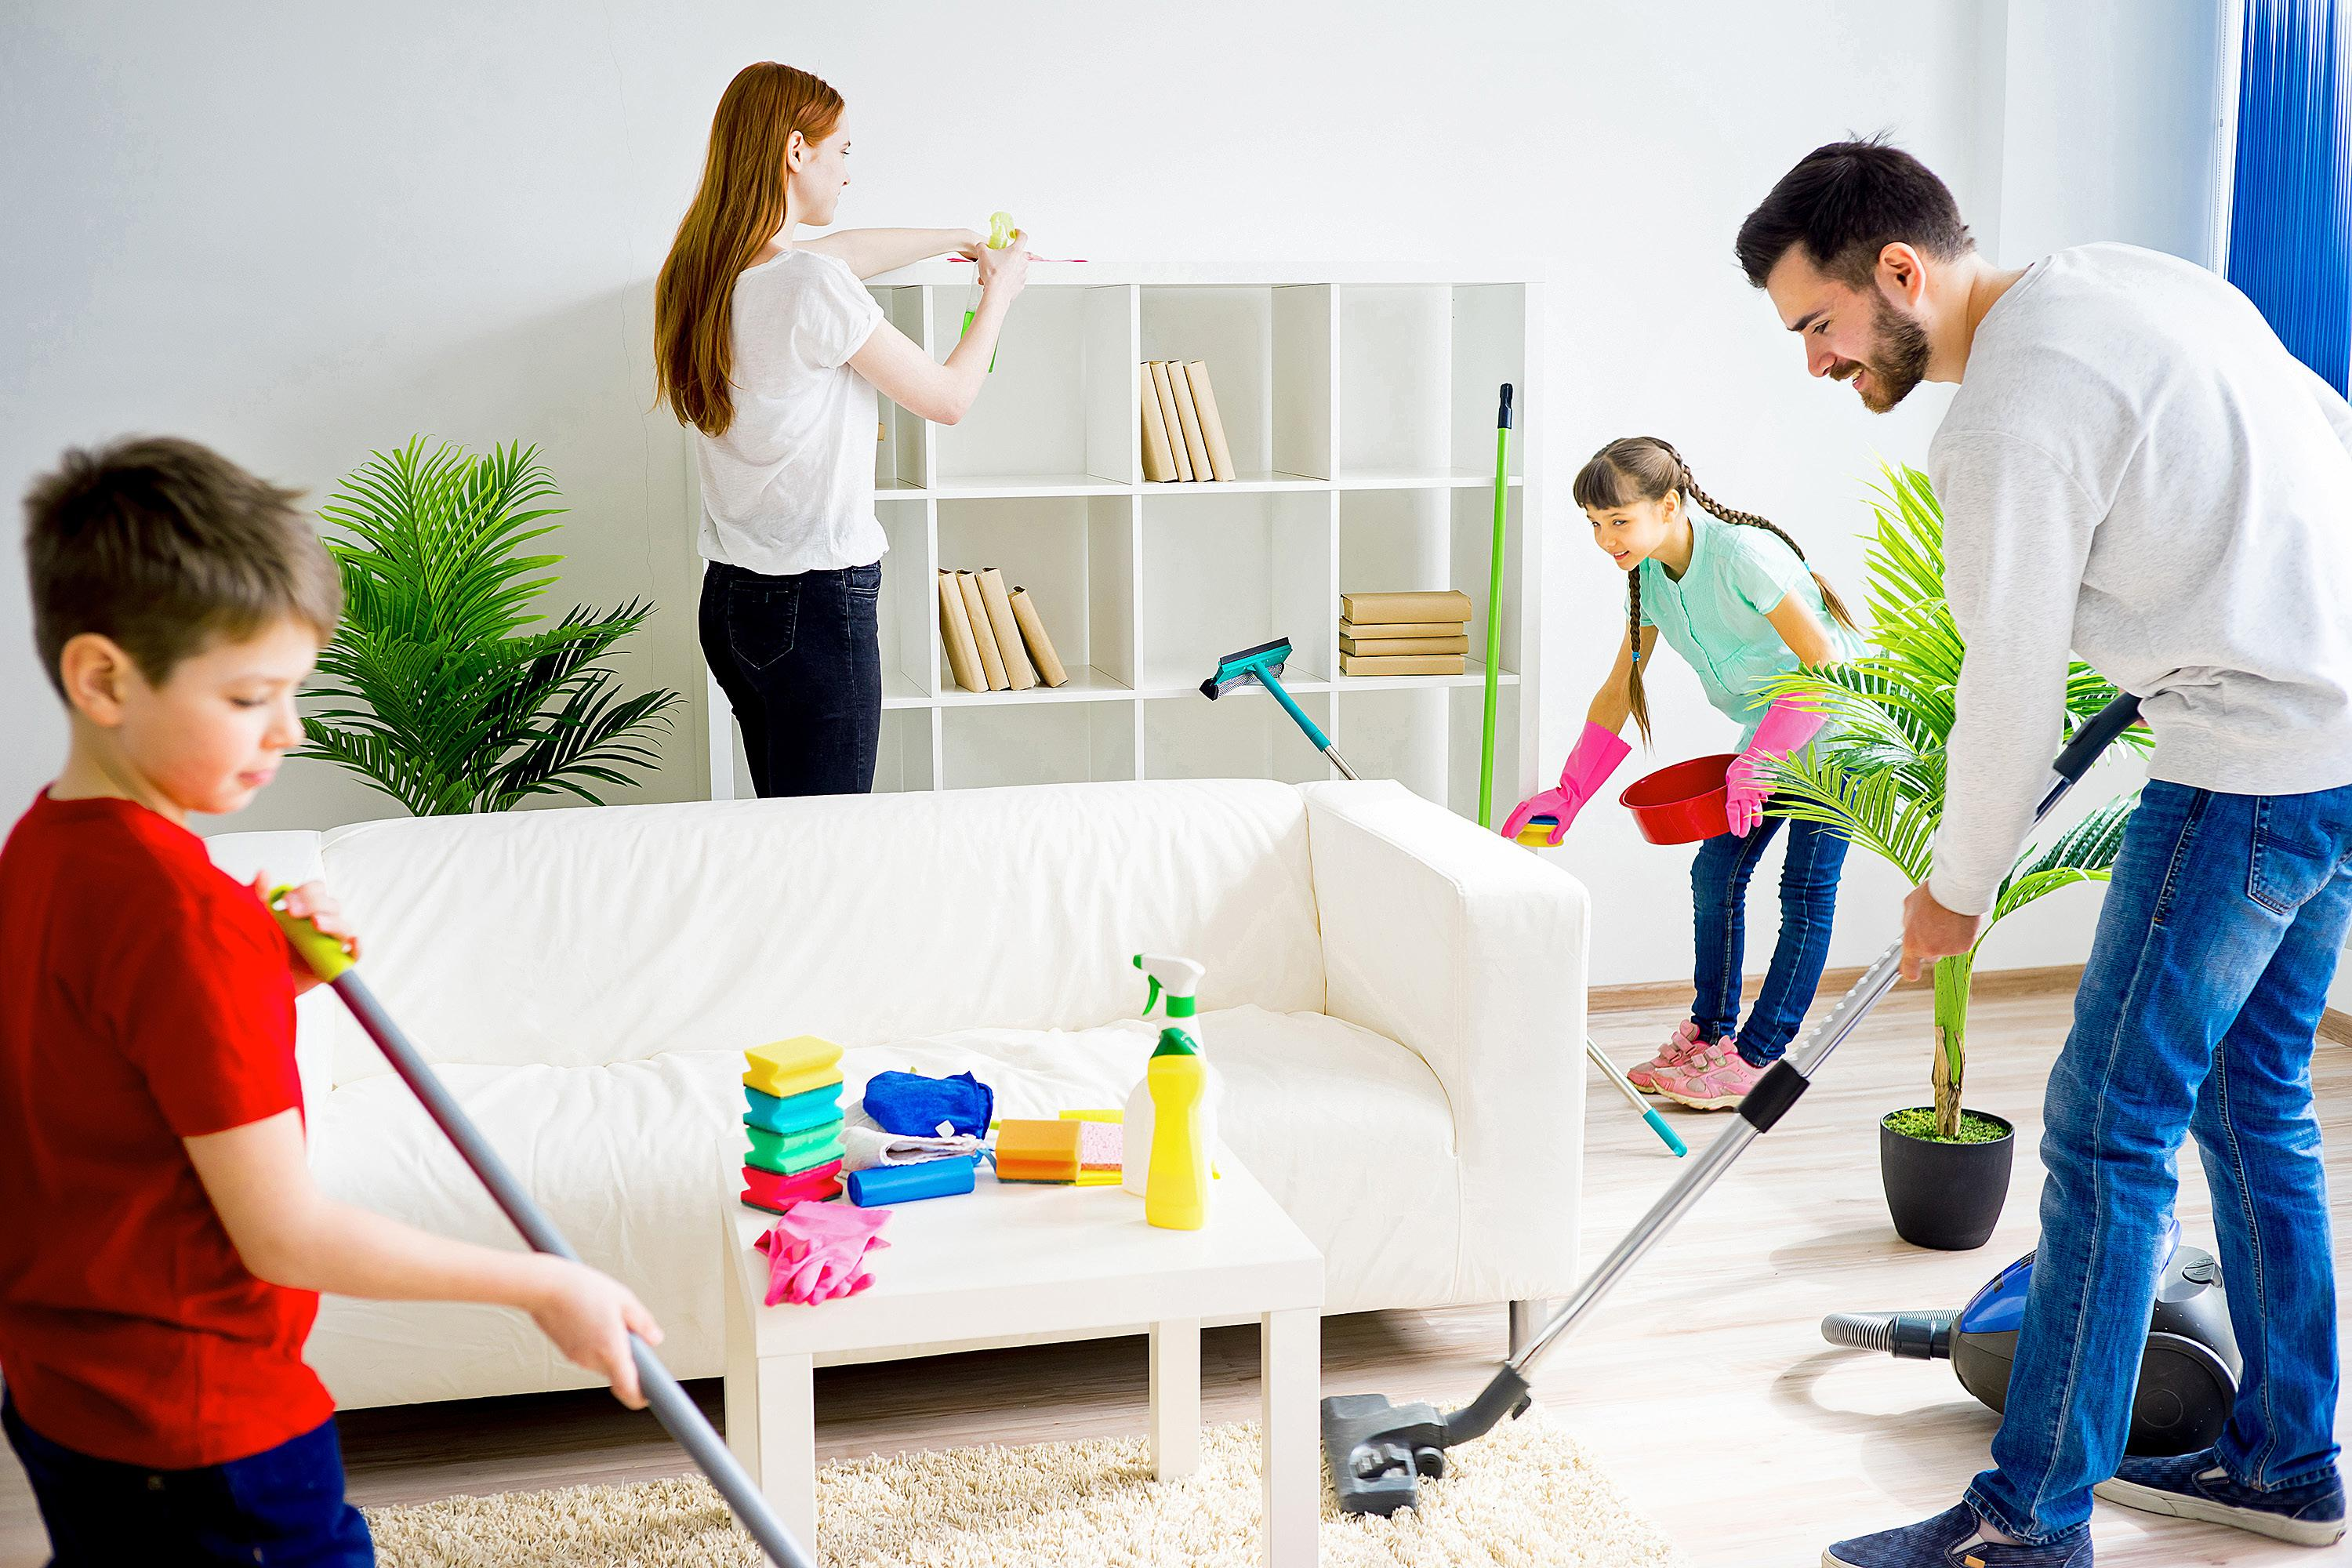 Page 42 of The Family That Cleans Together: Tips from a Professional Organizer